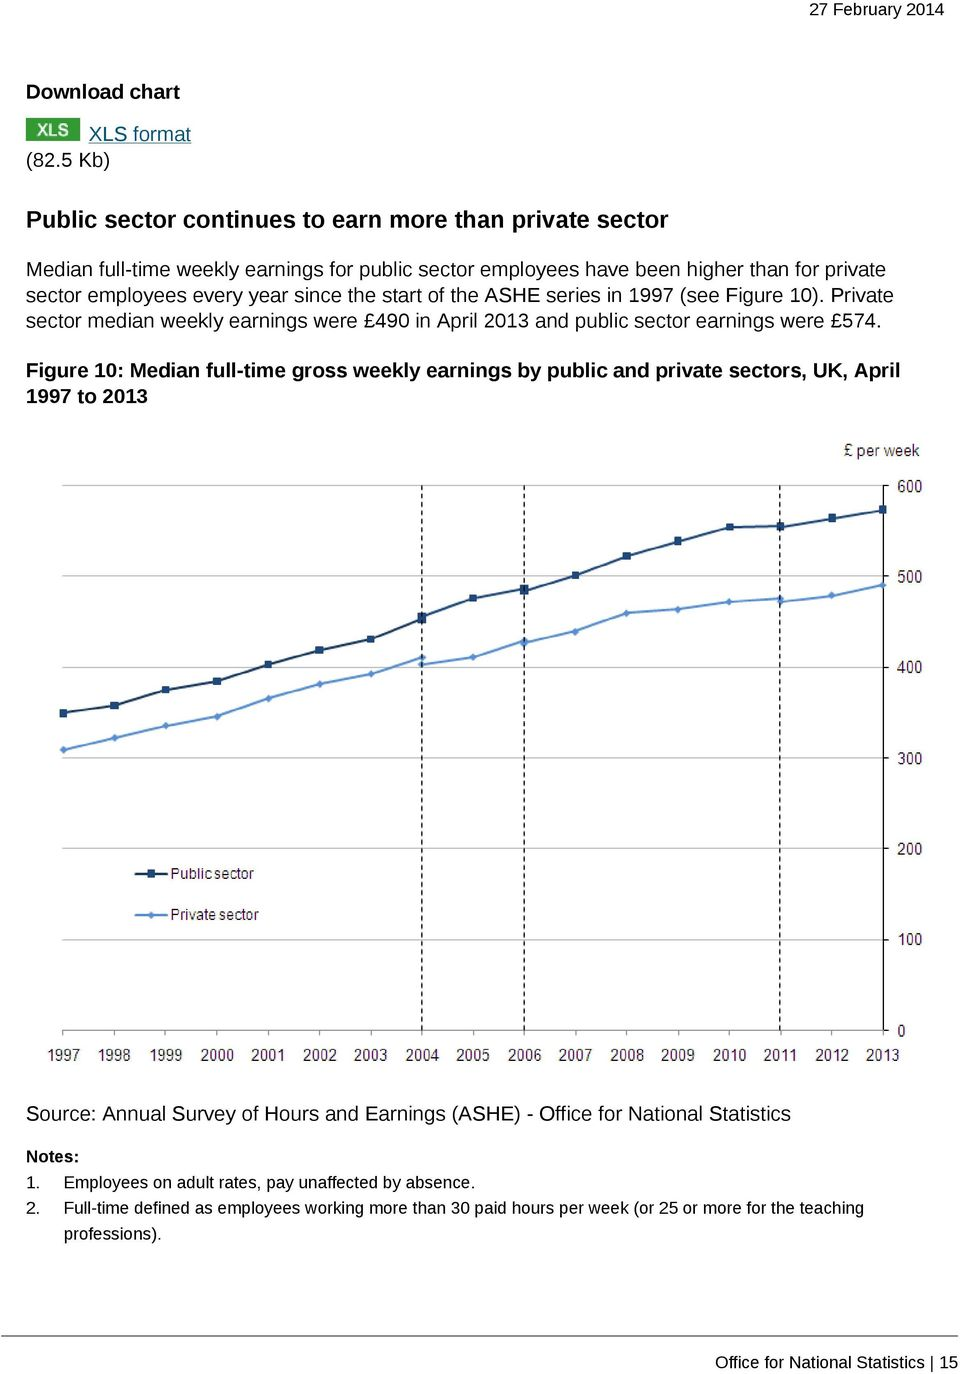 the start of the ASHE series in 1997 (see Figure 10). Private sector median weekly earnings were 490 in April 2013 and public sector earnings were 574.